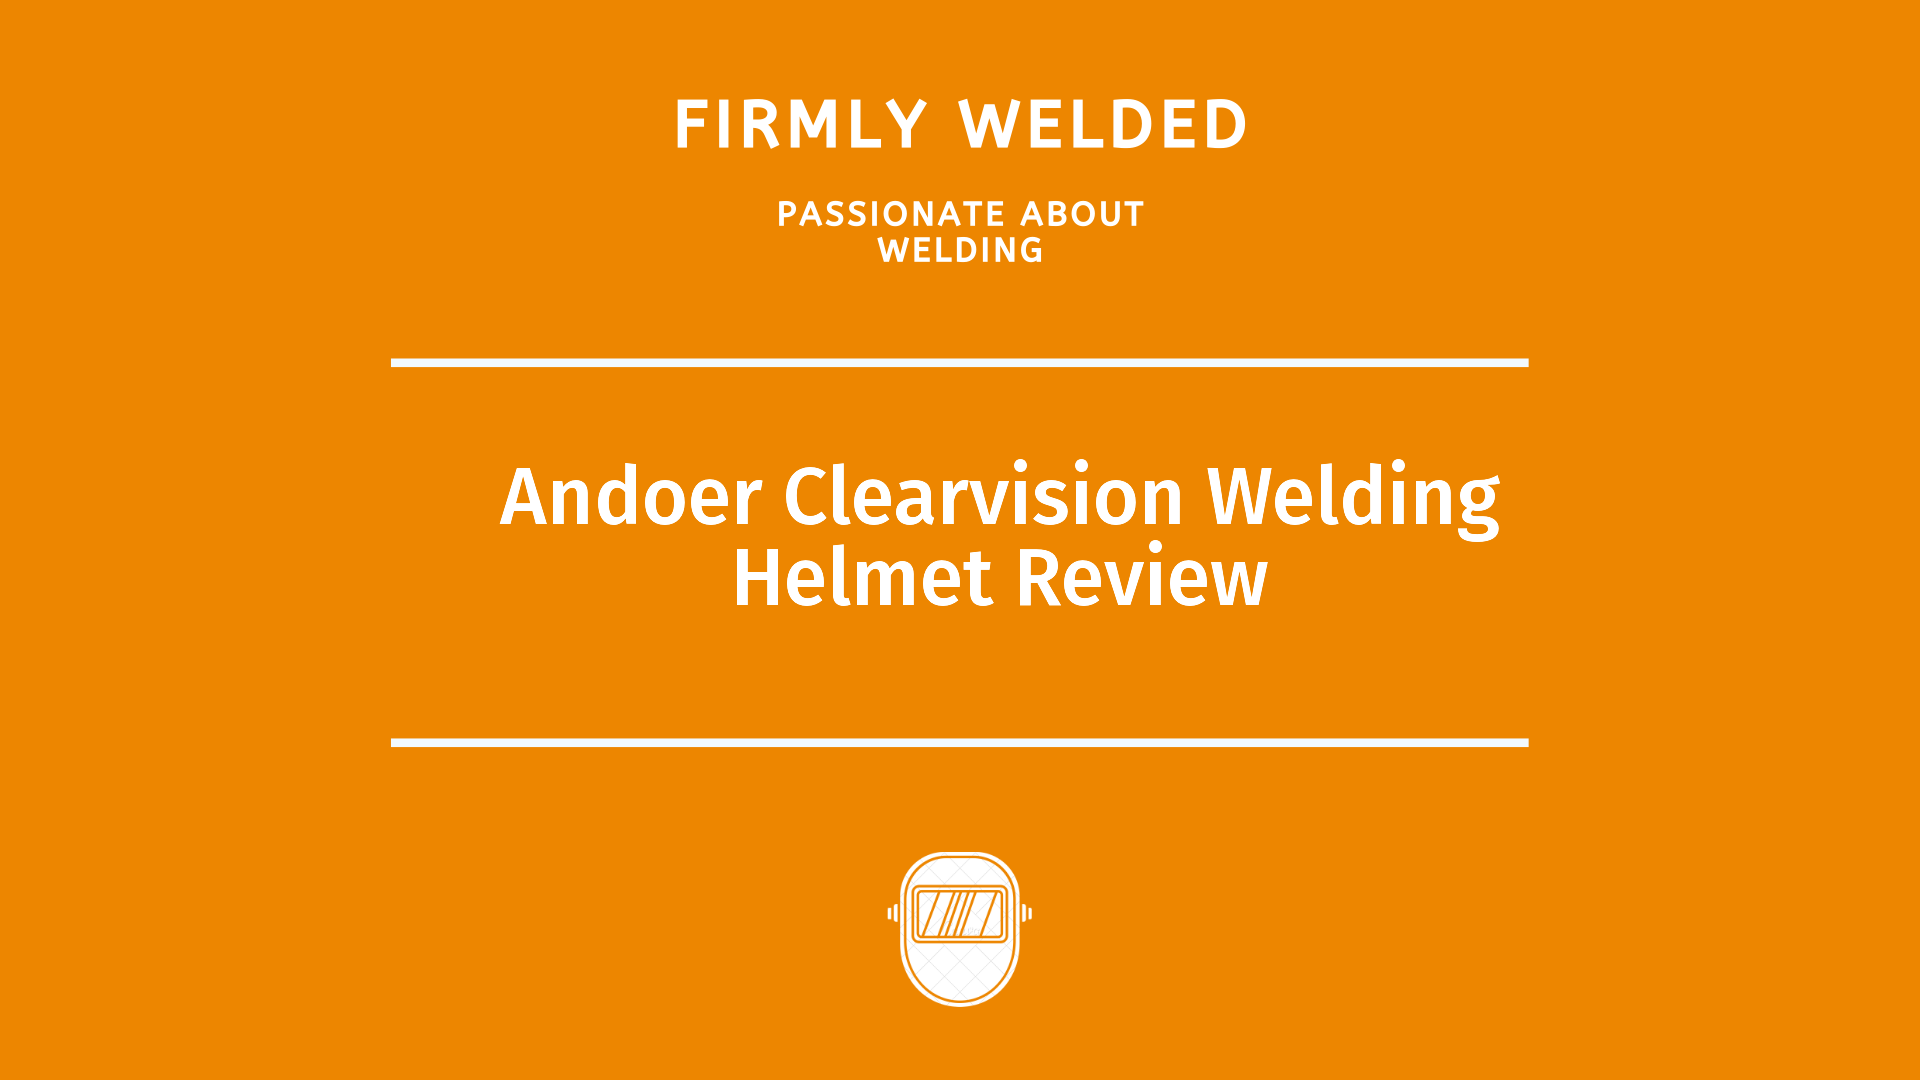 Andoer Clearvision Welding Helmet Review